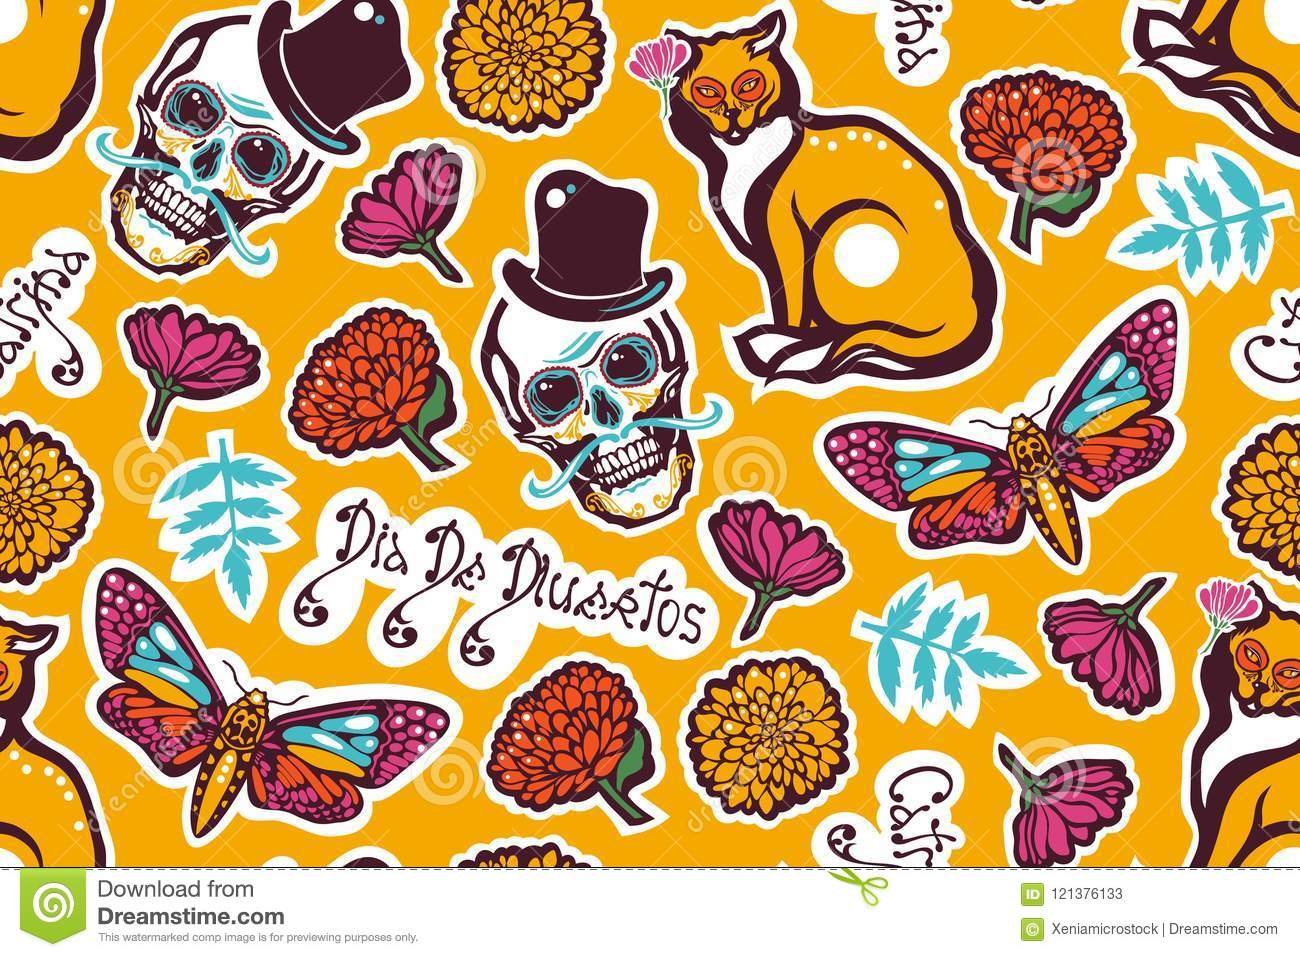 Mexican Day of the Dead. Dia De Los Muertos. Seamless pattern with a human skull in a hat, a cat, a moth Hyles, flowers, marigolds